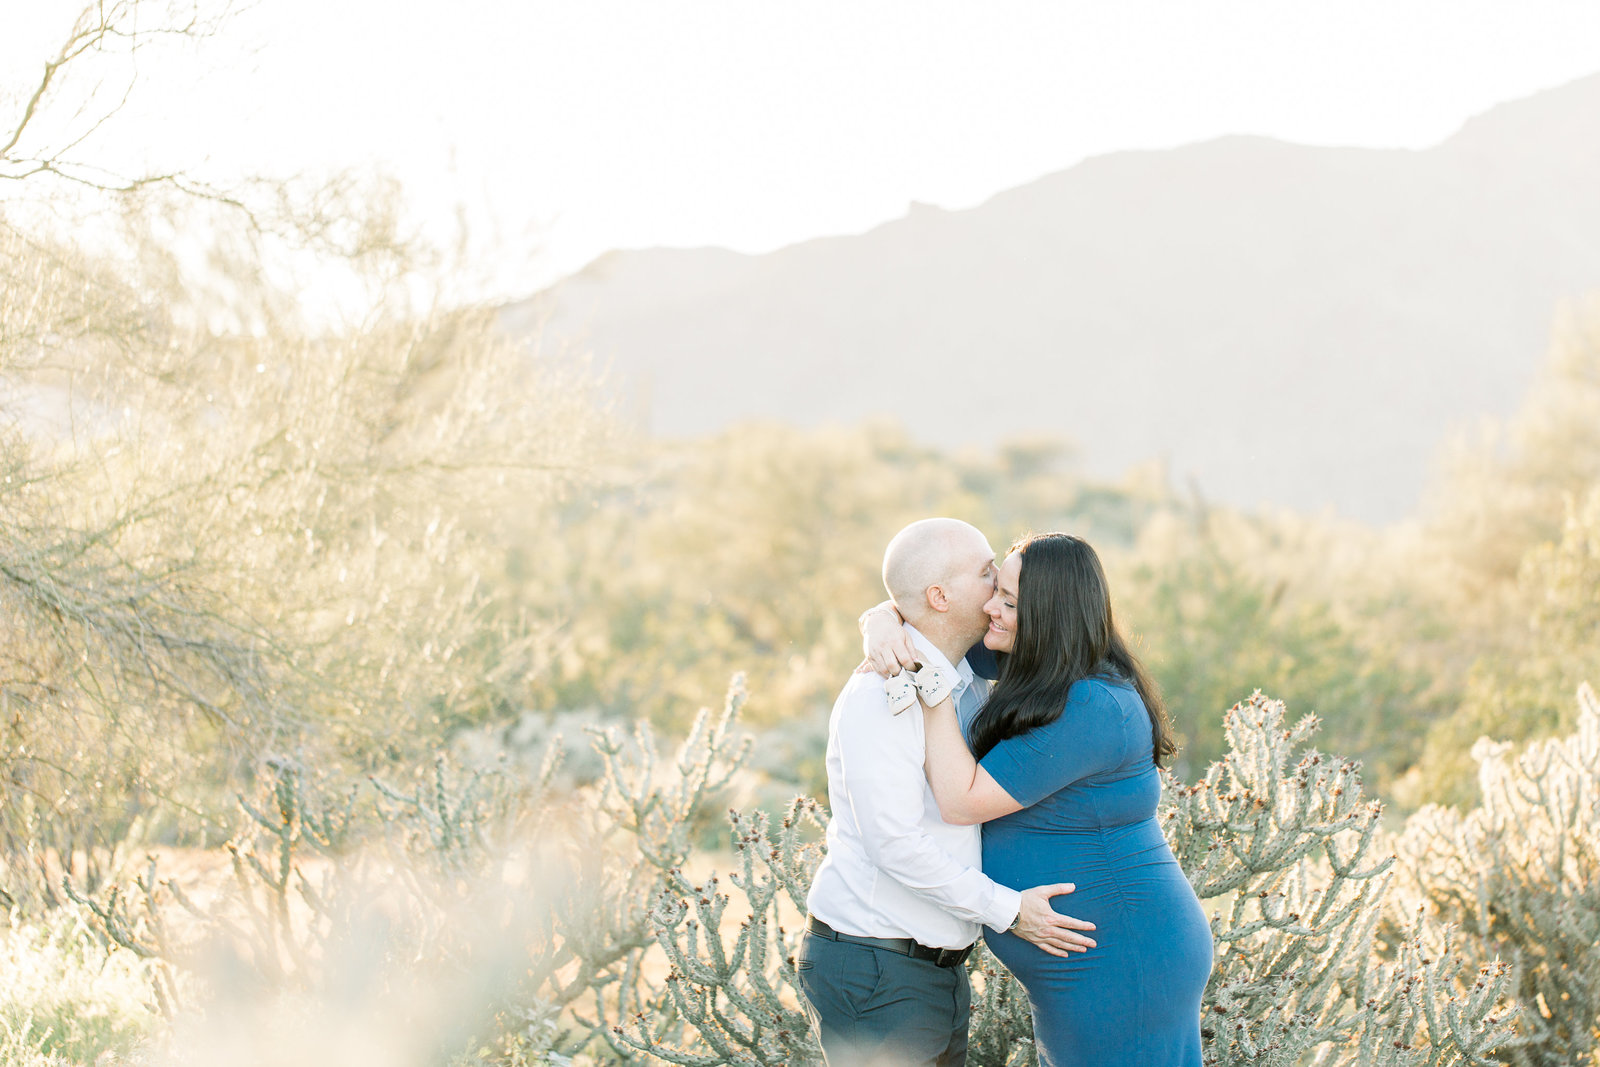 Aly-Kirk-Photo-Mesa-Arizona-Photographer-Desert-Mountain-Maternity-0009